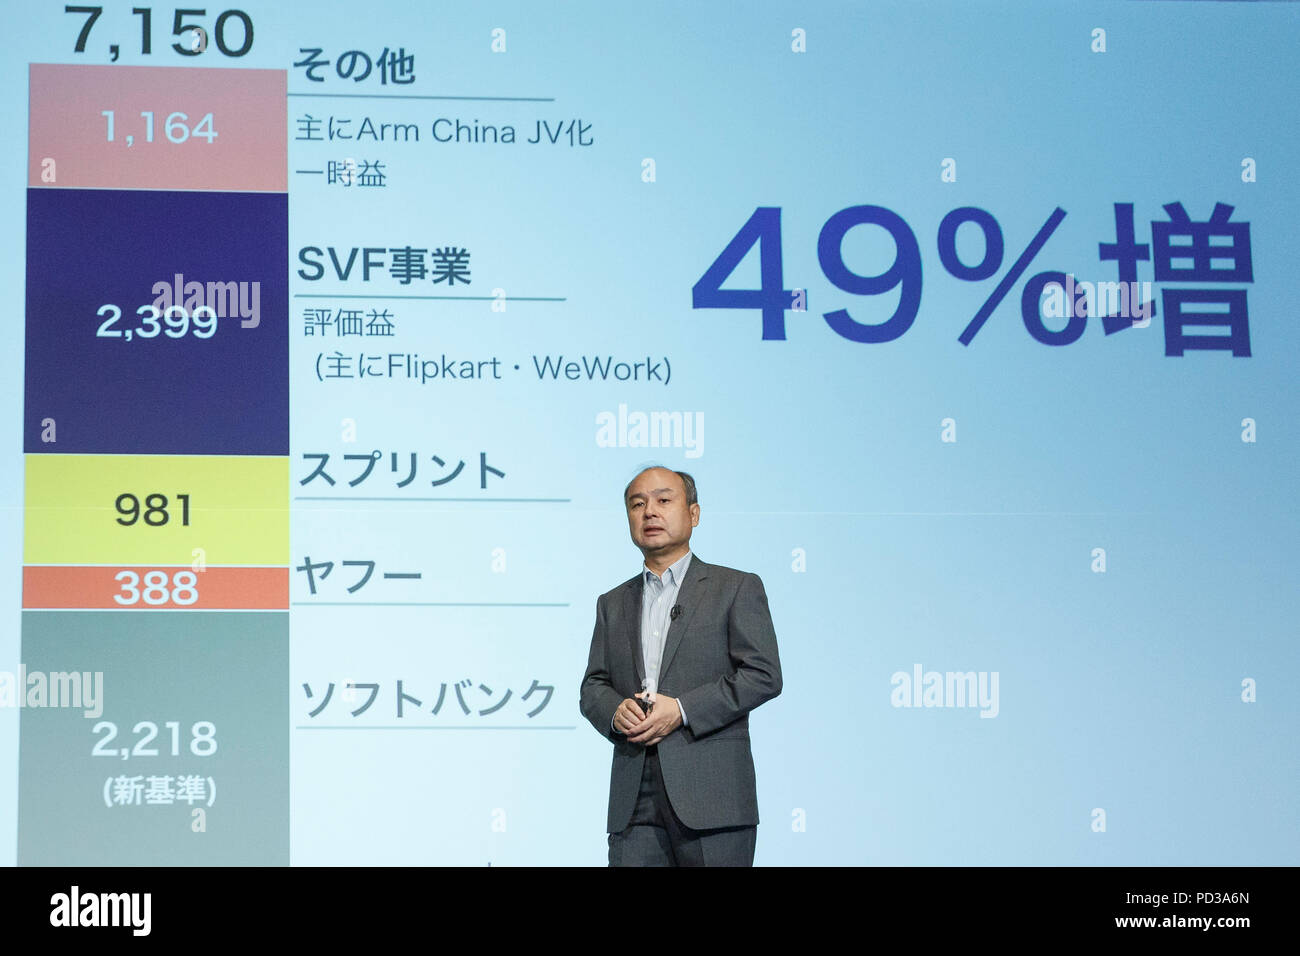 SoftBank Chairman and CEO Masayoshi Son speaks during a news